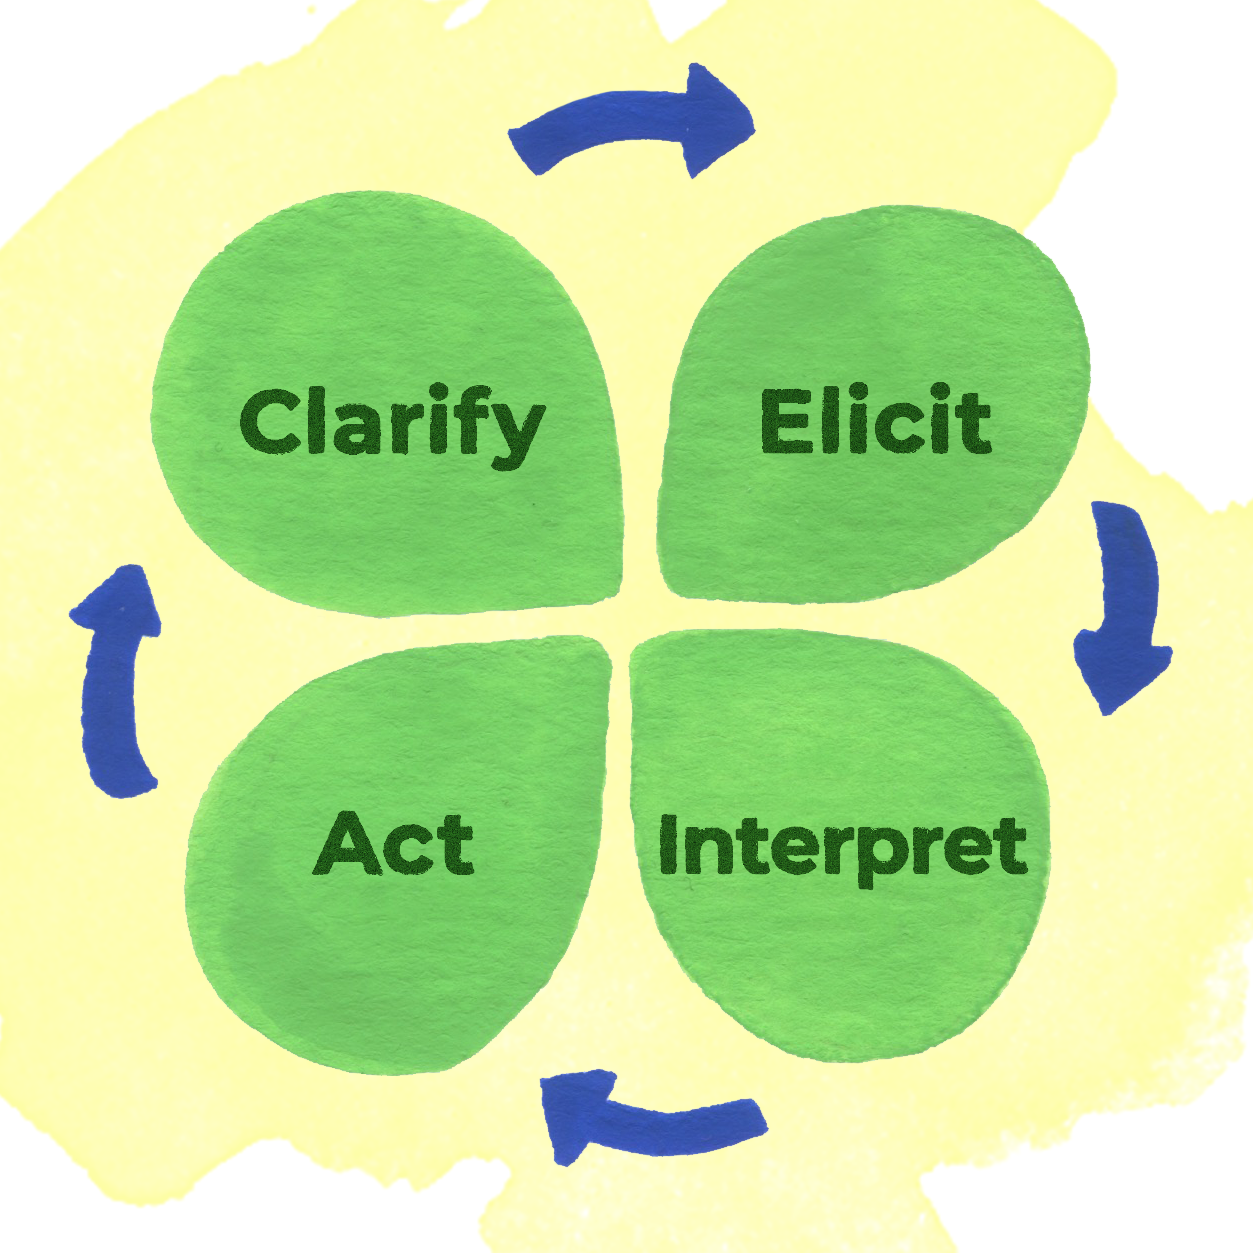 Diagram of the formative assessment process, in the shape of clover, with each leaf pointing to the next with a blue arrow. From the top right leaf clockwise: Elicit, Interpret, Act, Clarify.